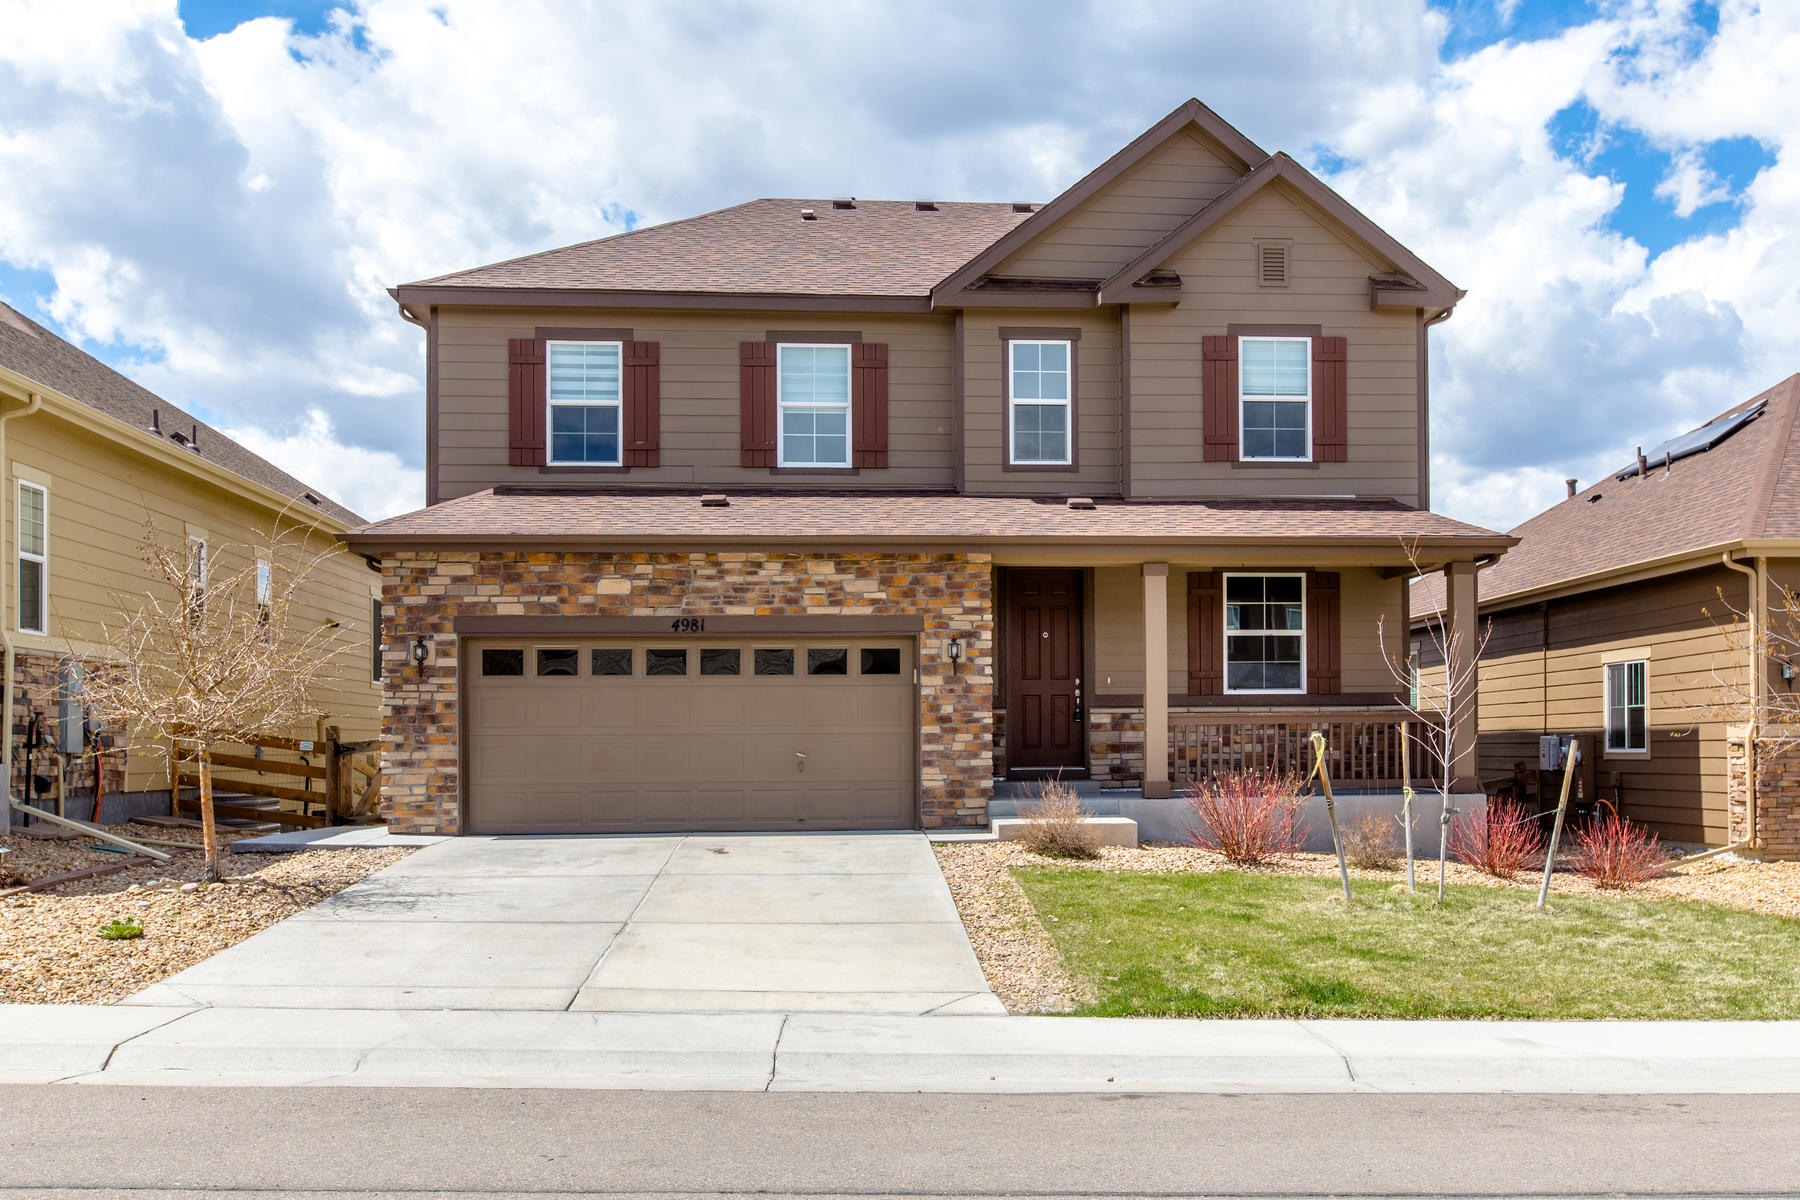 Single Family Homes for Sale at Located in the highly sought after Ponderosa section of Copperleaf. 4981 S Versailles Circle, Aurora, Colorado 80015 United States